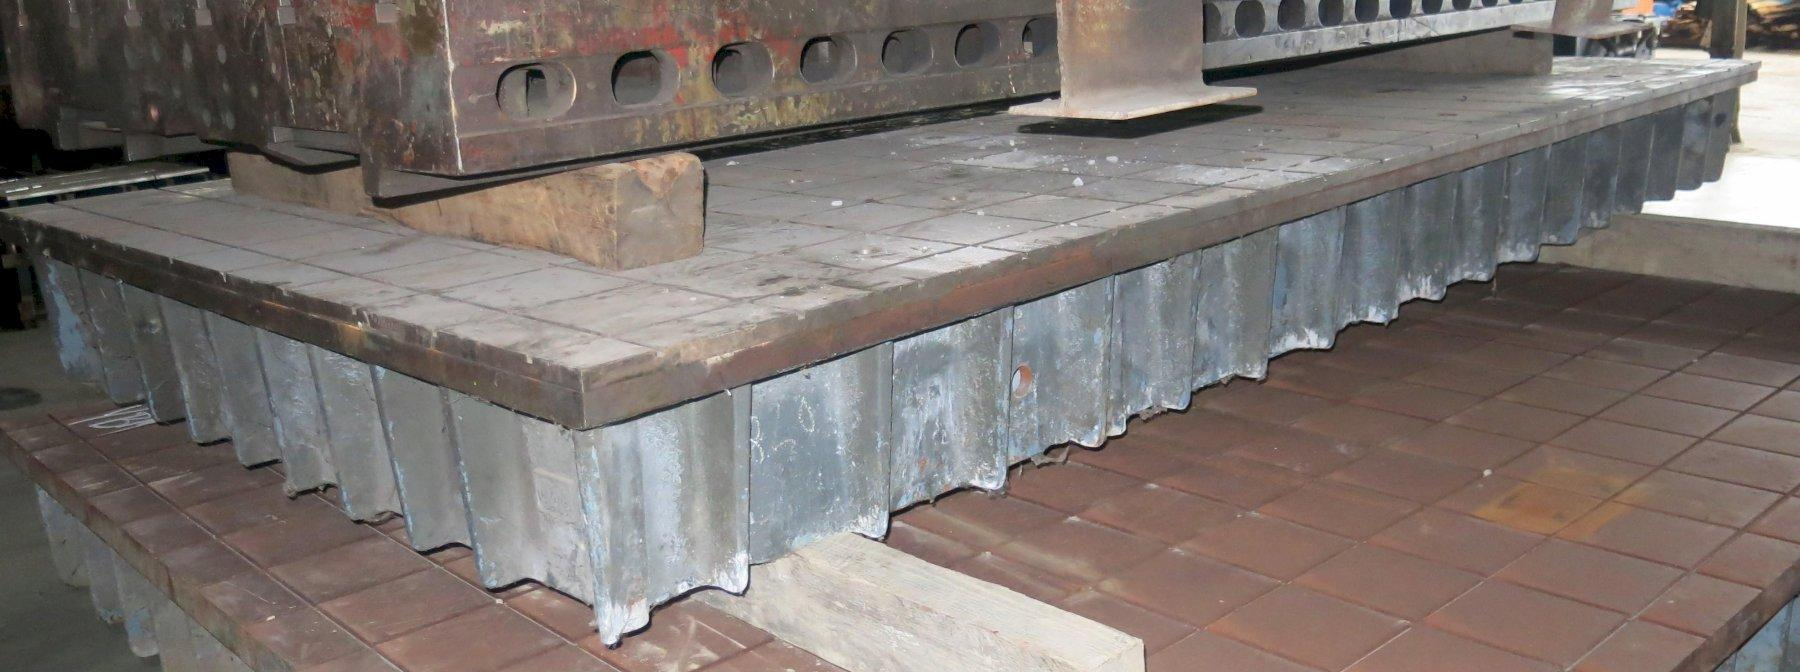 """78"""" X 158"""" x 15"""" PORTAGE GRID TYPE LAYOUT SURFACE TABLE: STOCK #11213"""